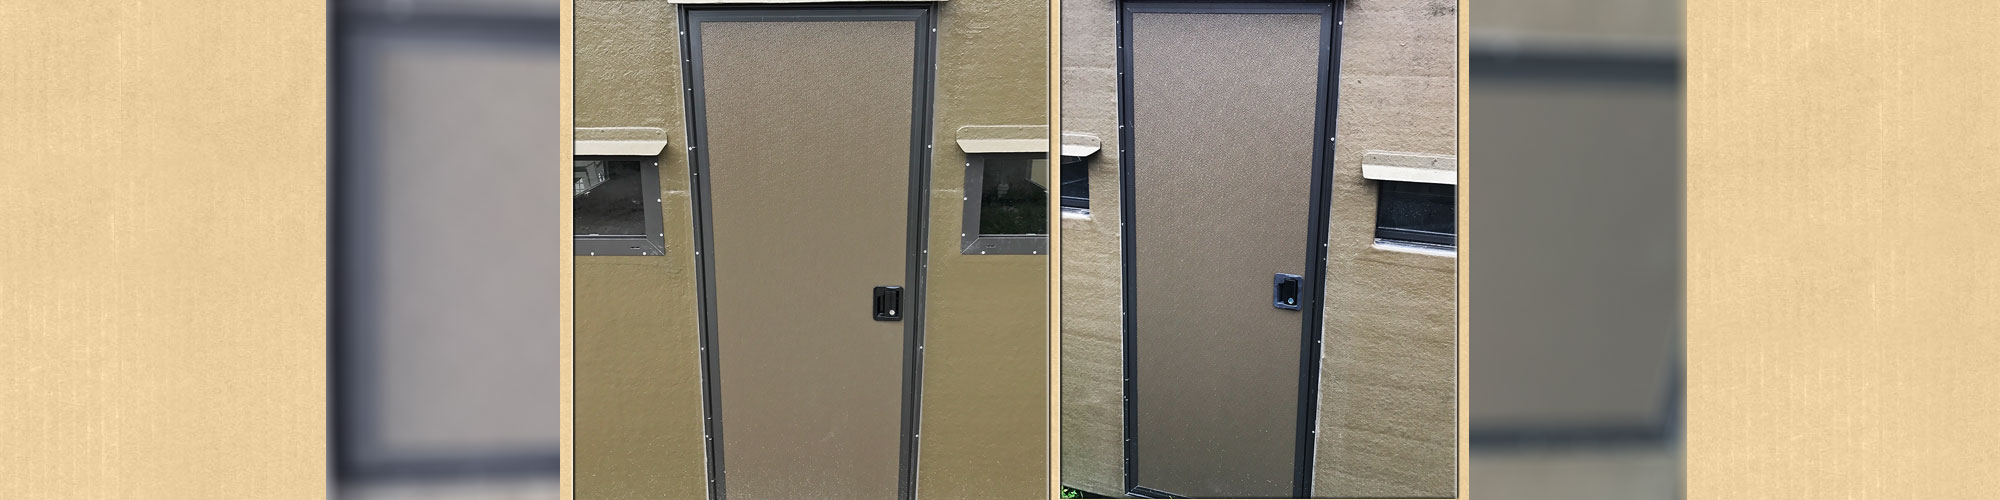 ideas stands from cheap a made windows my pvc shed blind ground for diy box deer hunting openable sale blinds plexiglass